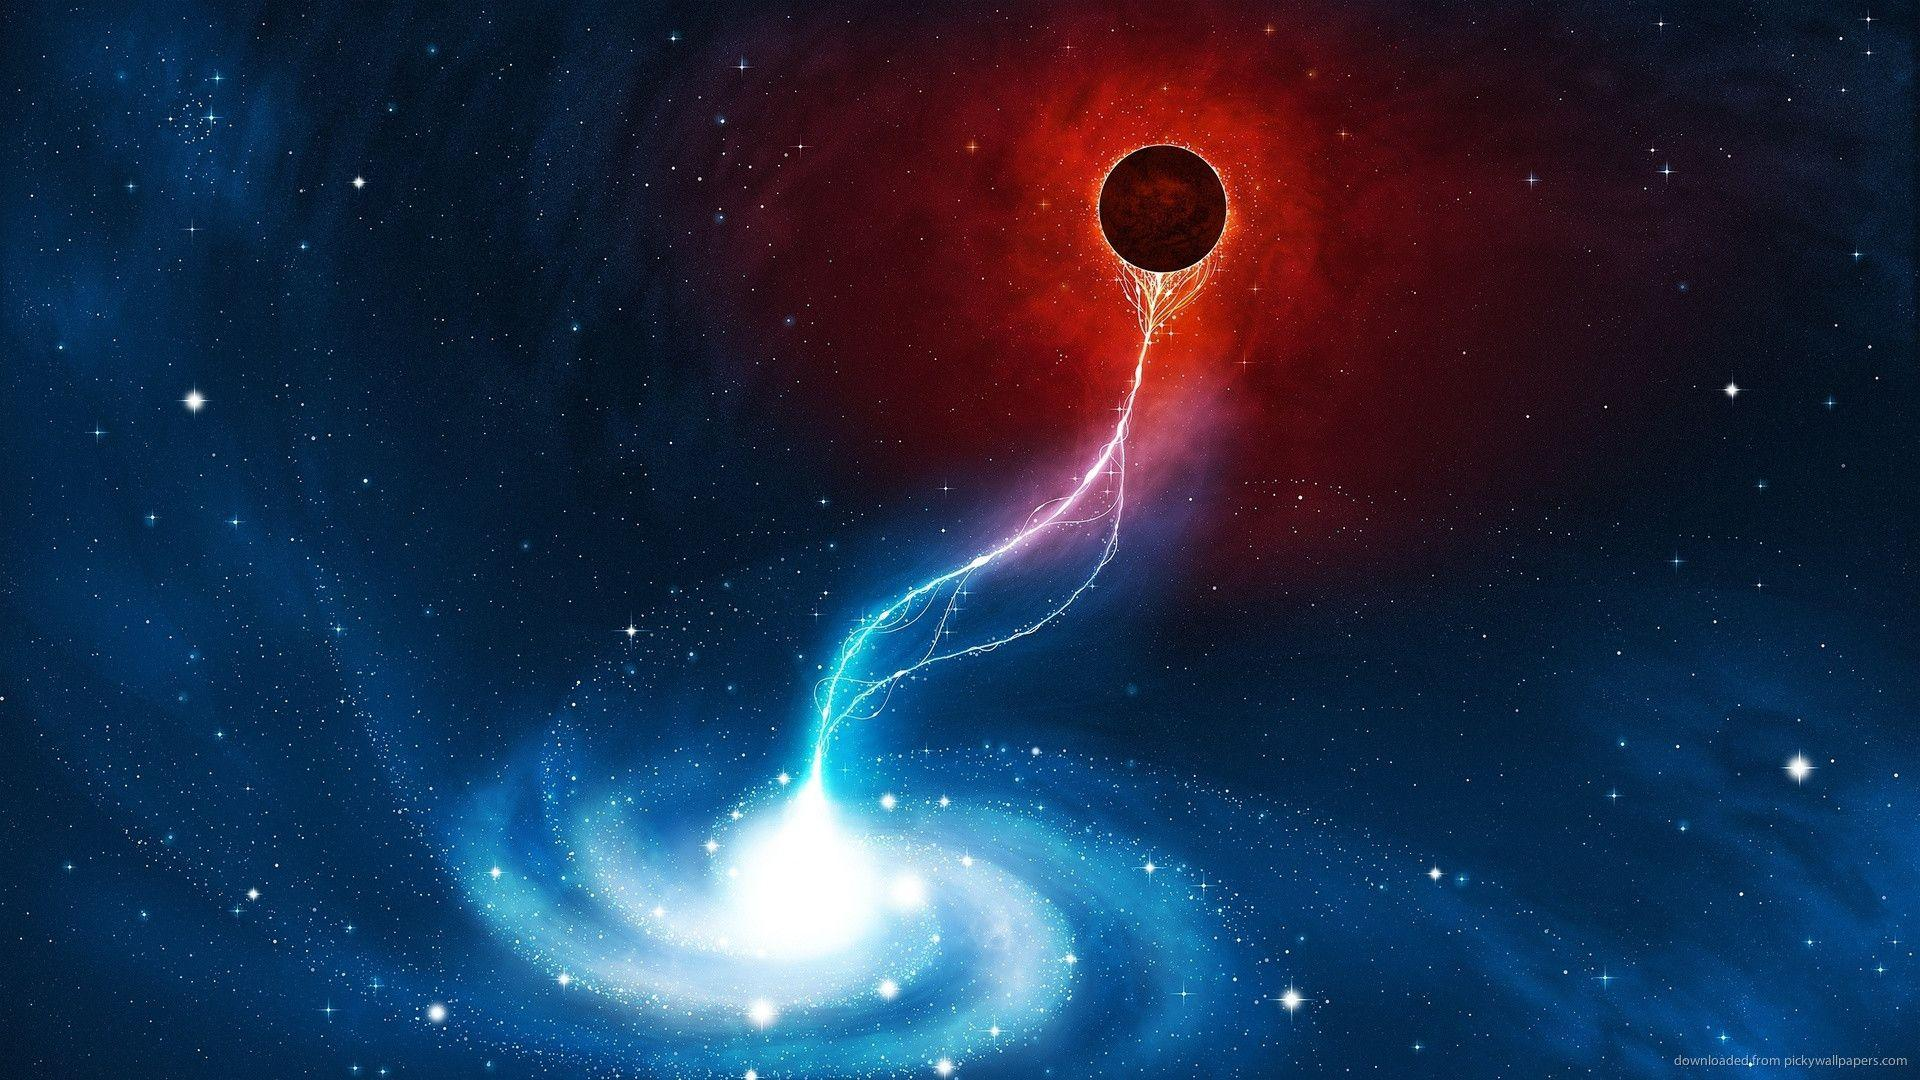 Black Hole Wallpapers: Space Black Hole Wallpapers